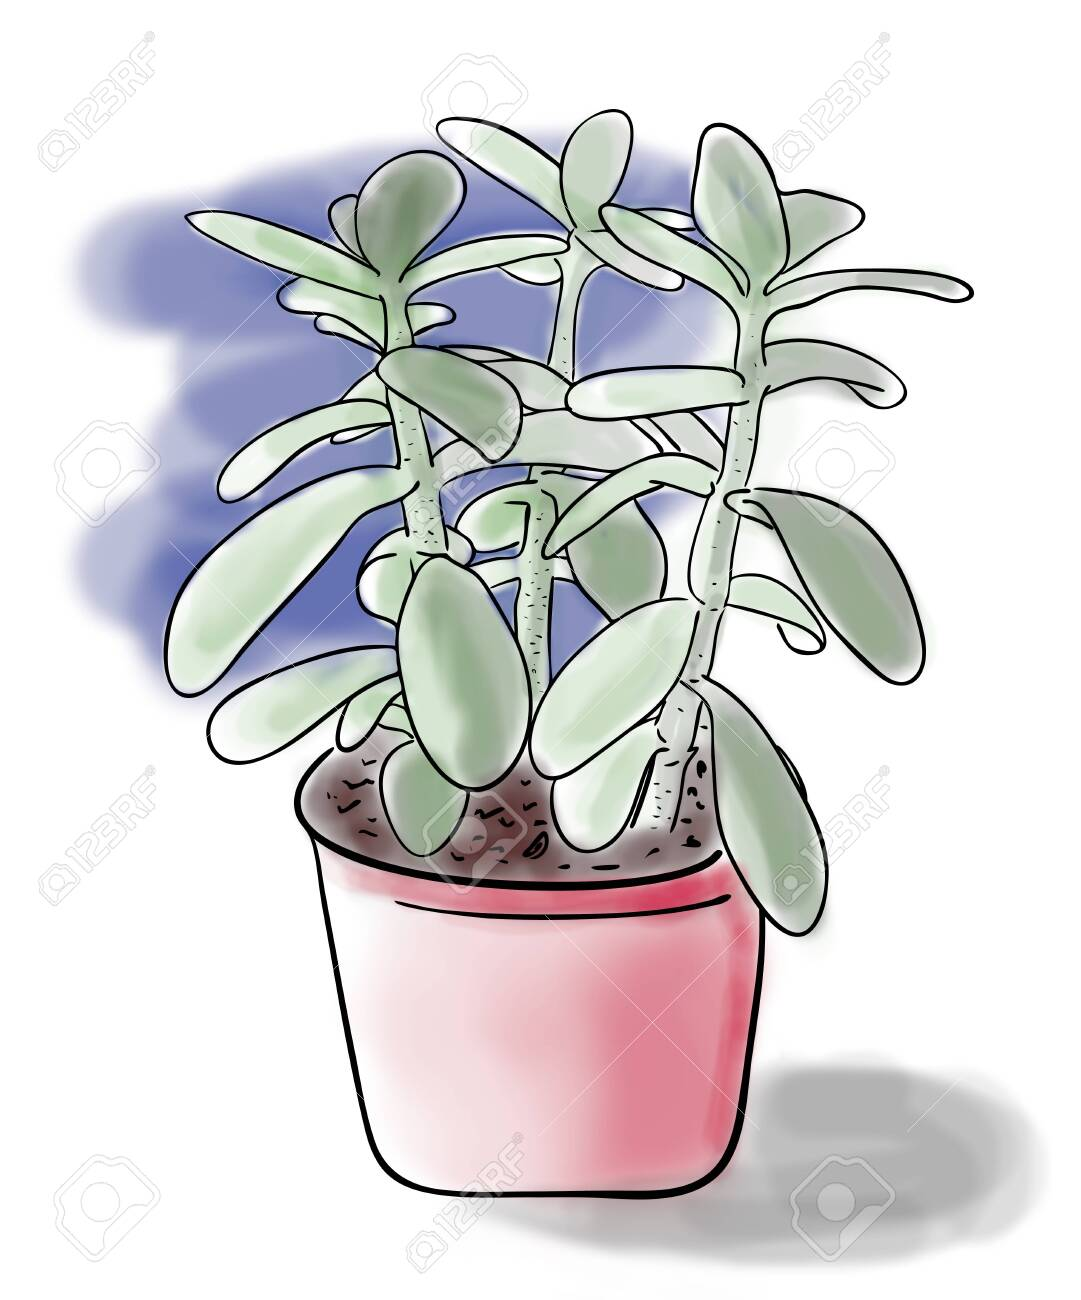 Digital Illustration Color Sketch Of Green Crassula Plant In Stock Photo Picture And Royalty Free Image Image 127052641